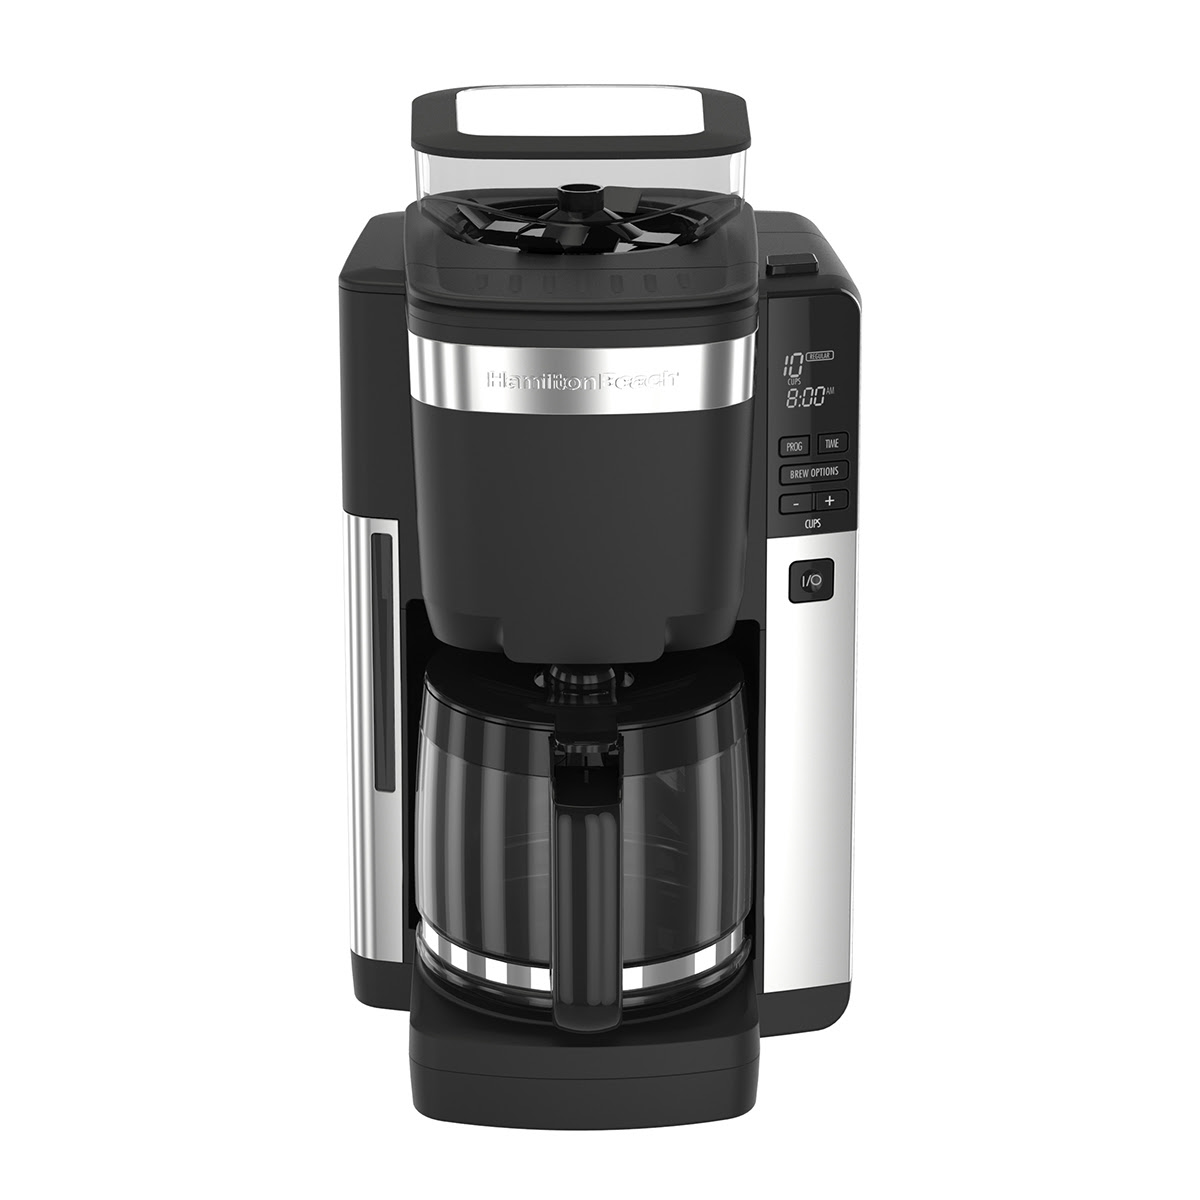 Hamilton Beach 12-Cup Coffee Maker with Automatic Grounds Dispenser, Black & Stainless - 45400